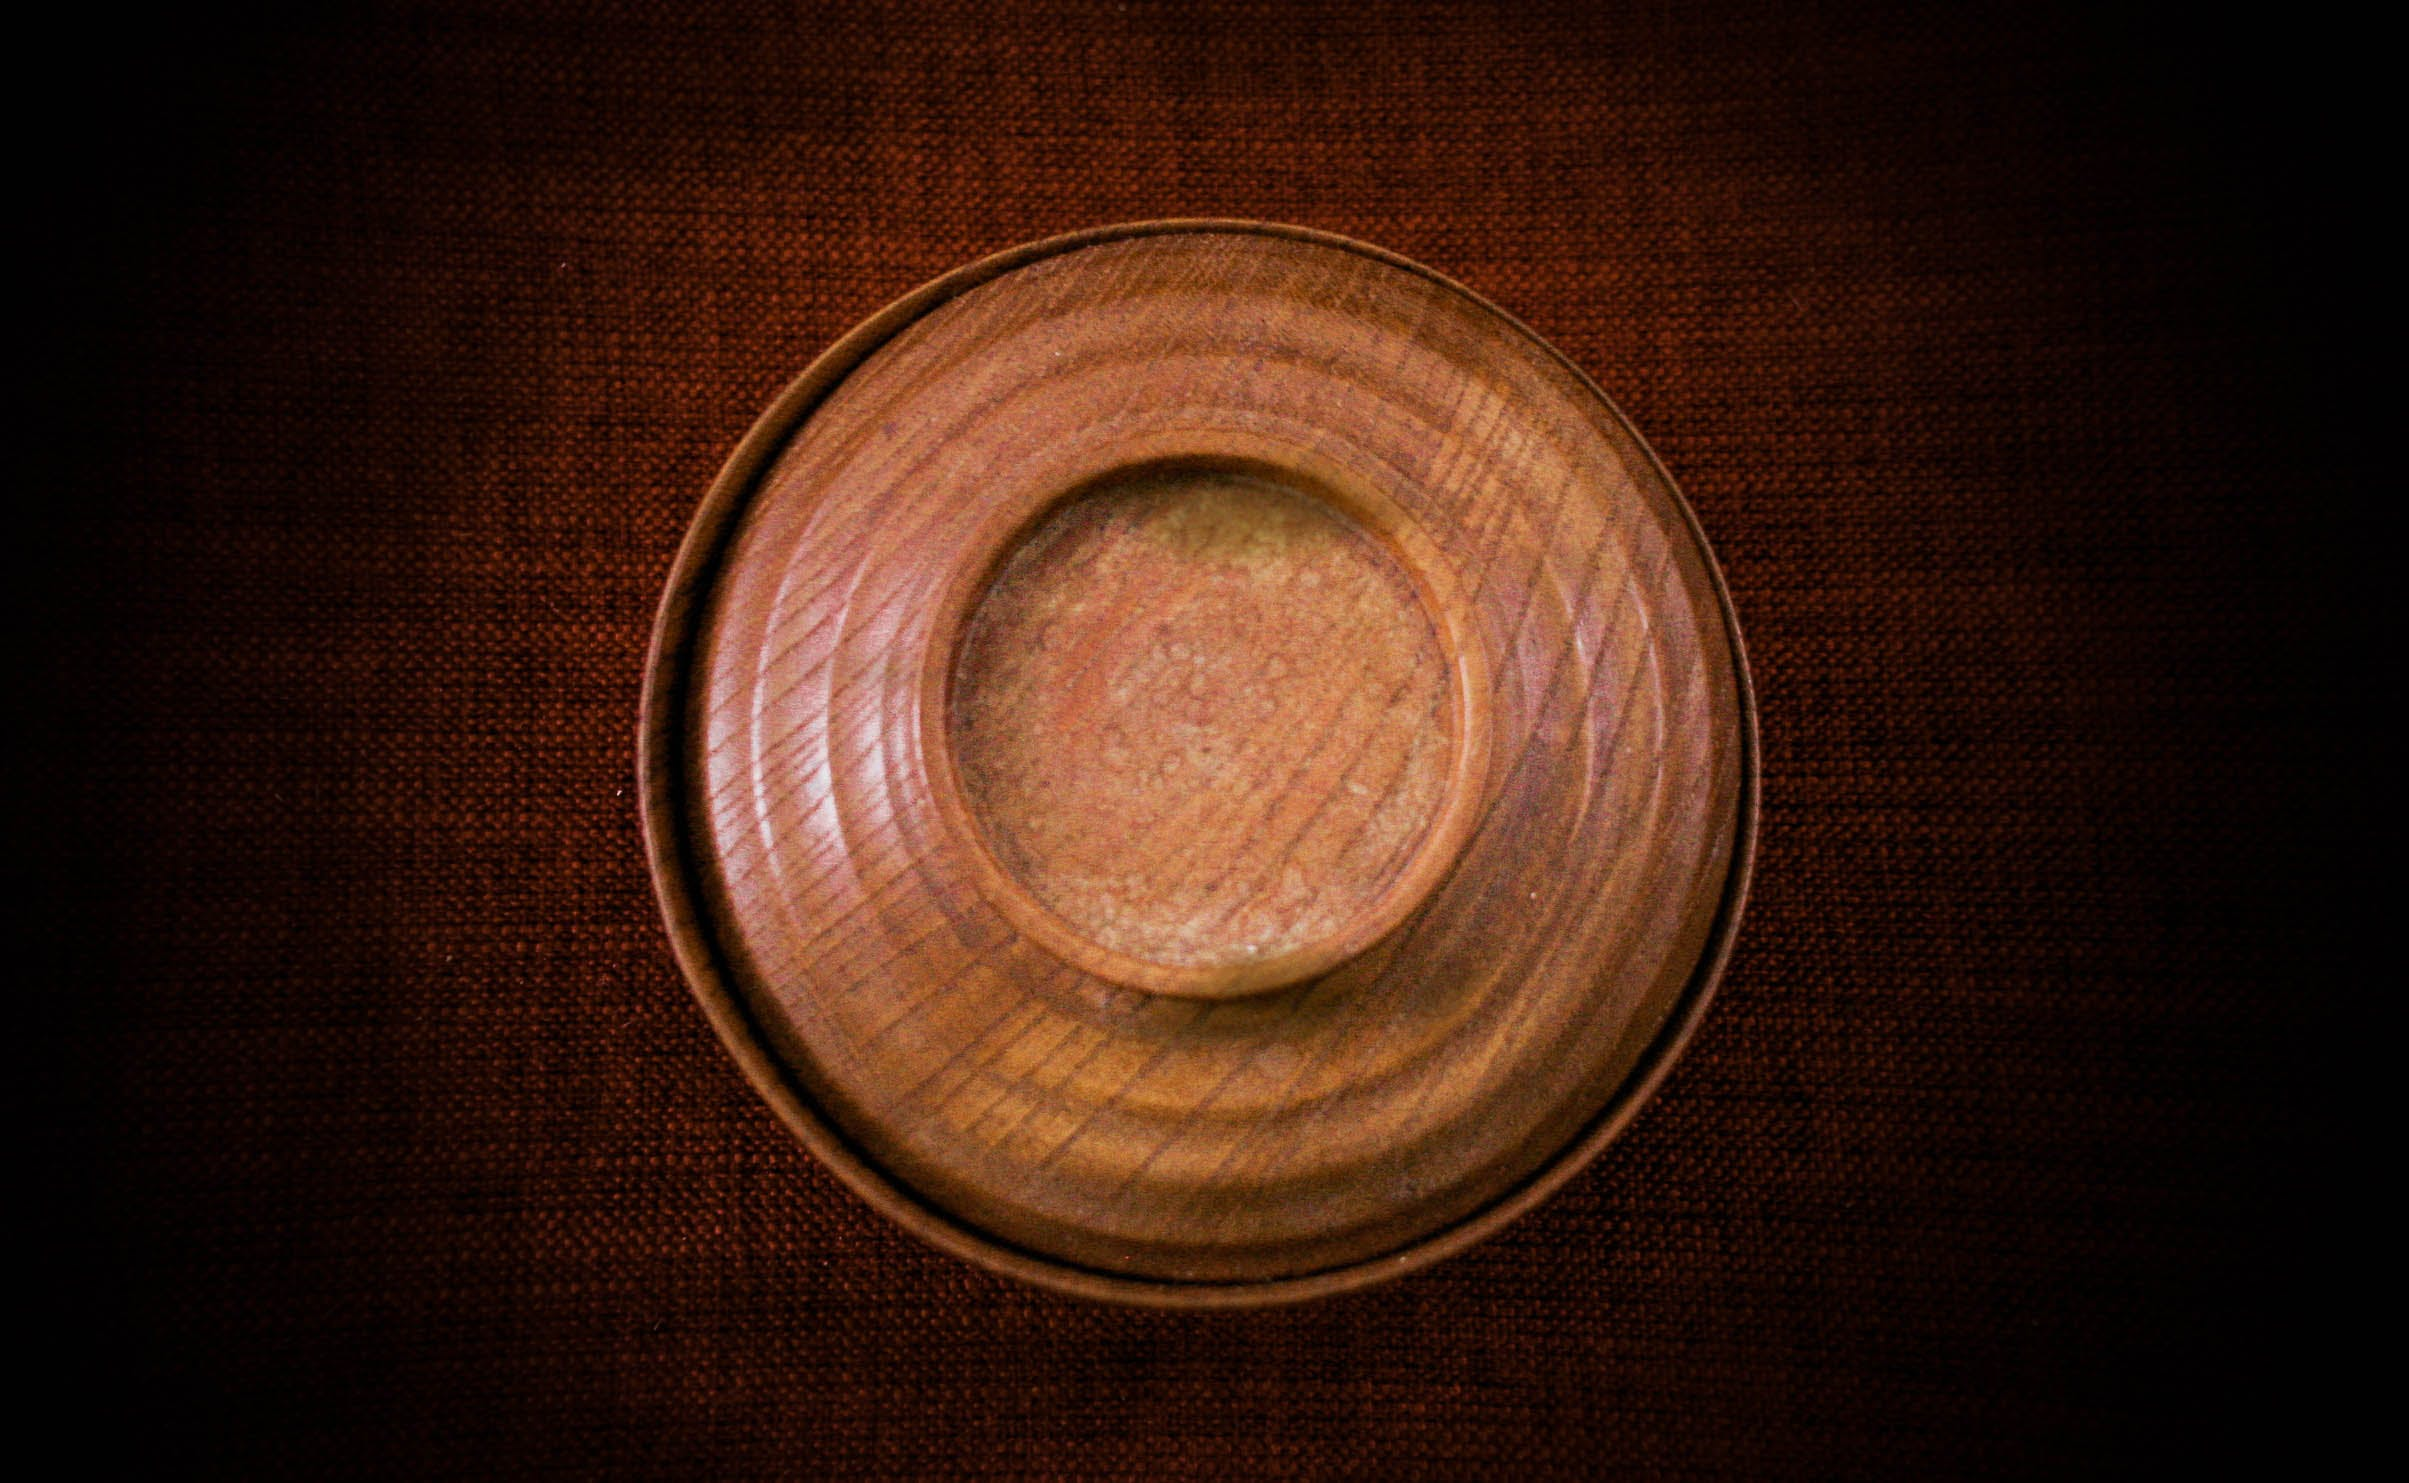 antique, art, bowl